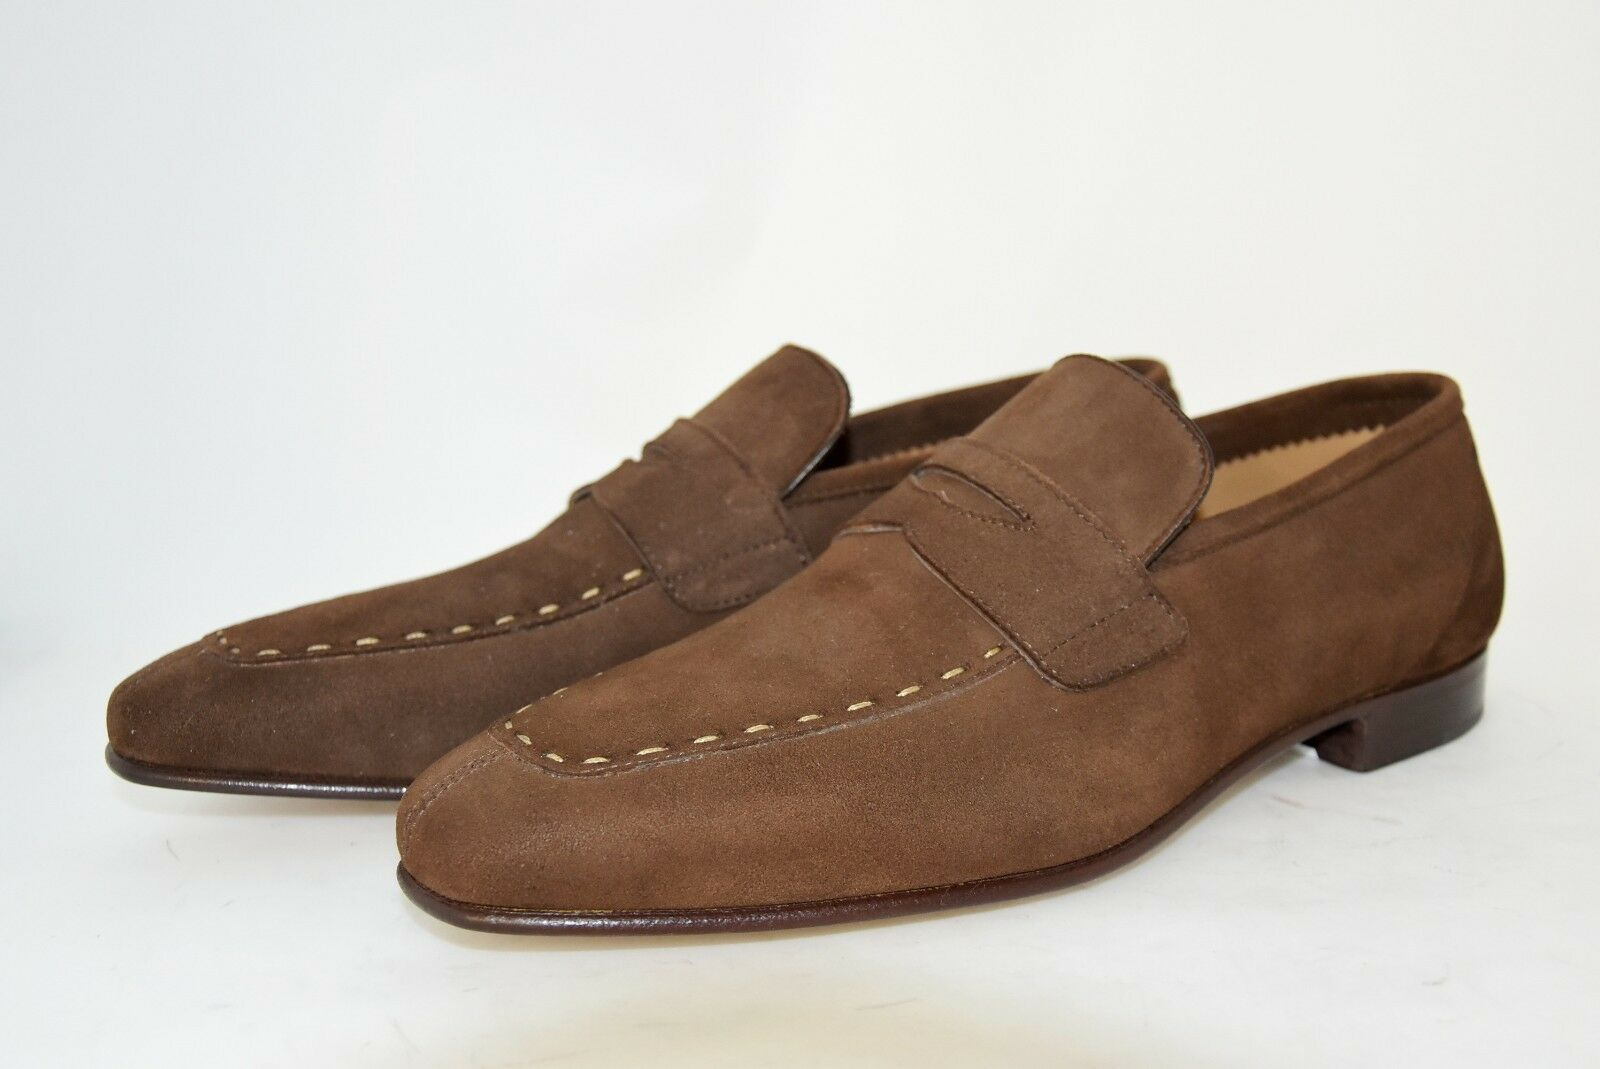 MAN-8½eu-9½usa-PENNY LOAFER-MOCASSINO-BROWN SUEDE-CAMOSCIO MARRONE-LEATHER MARRONE-LEATHER MARRONE-LEATHER SOLE aab2c5